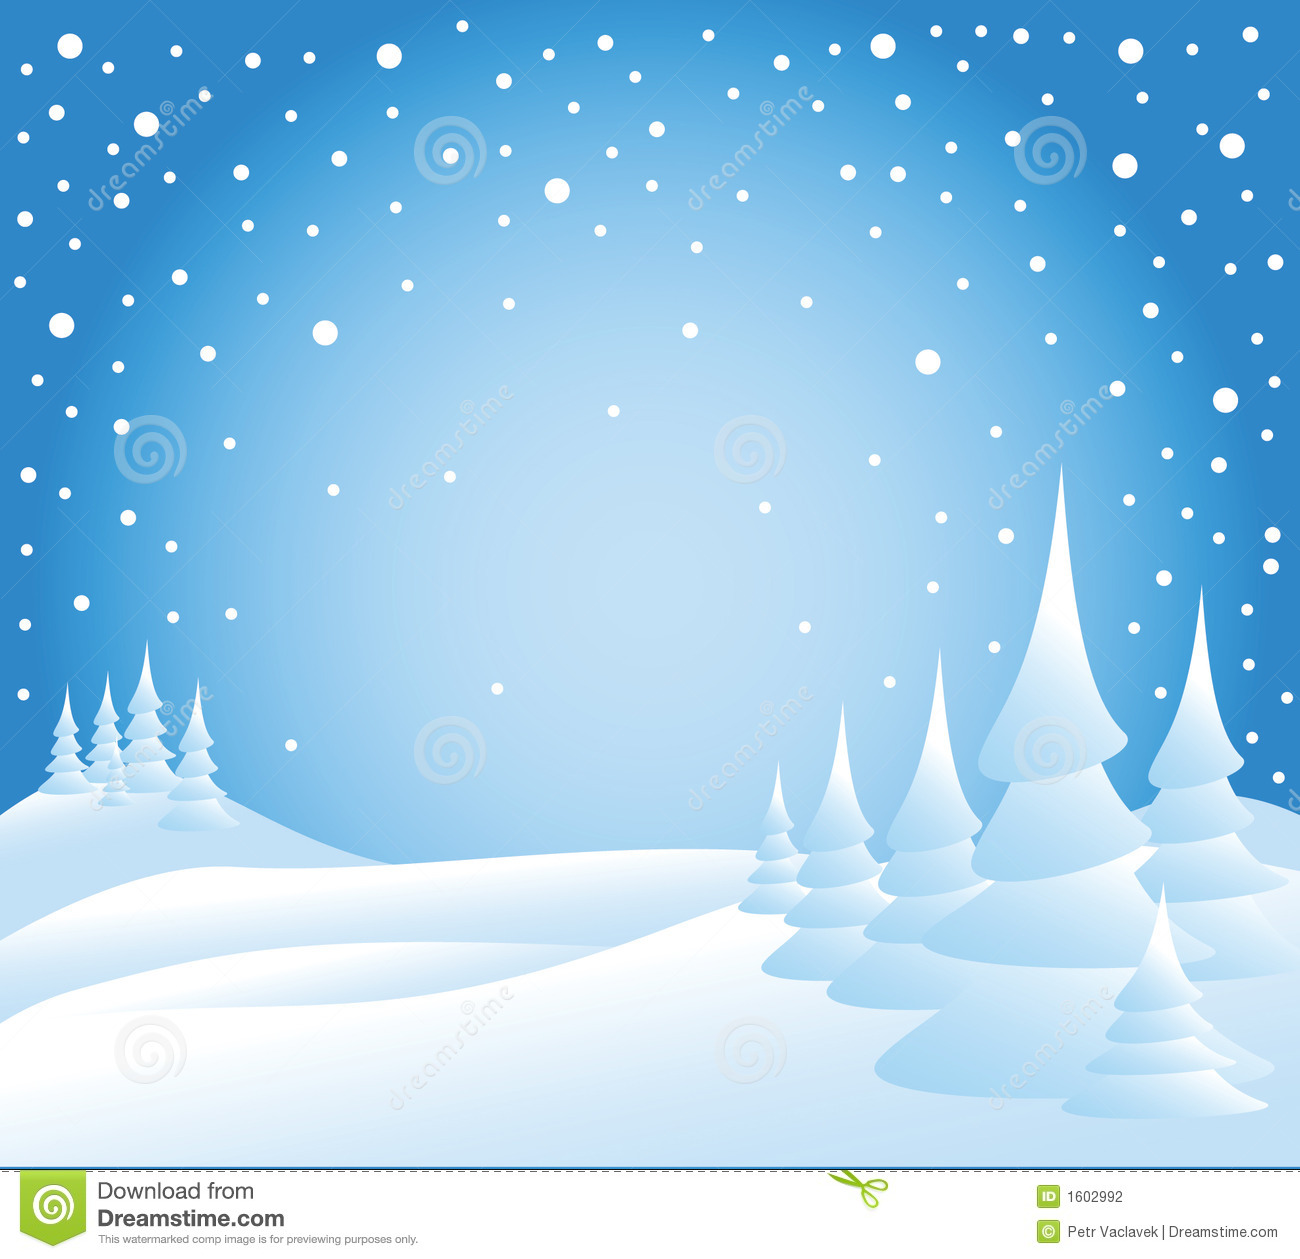 Clipart snow background jpg library download Snow background clipart 5 » Clipart Station jpg library download